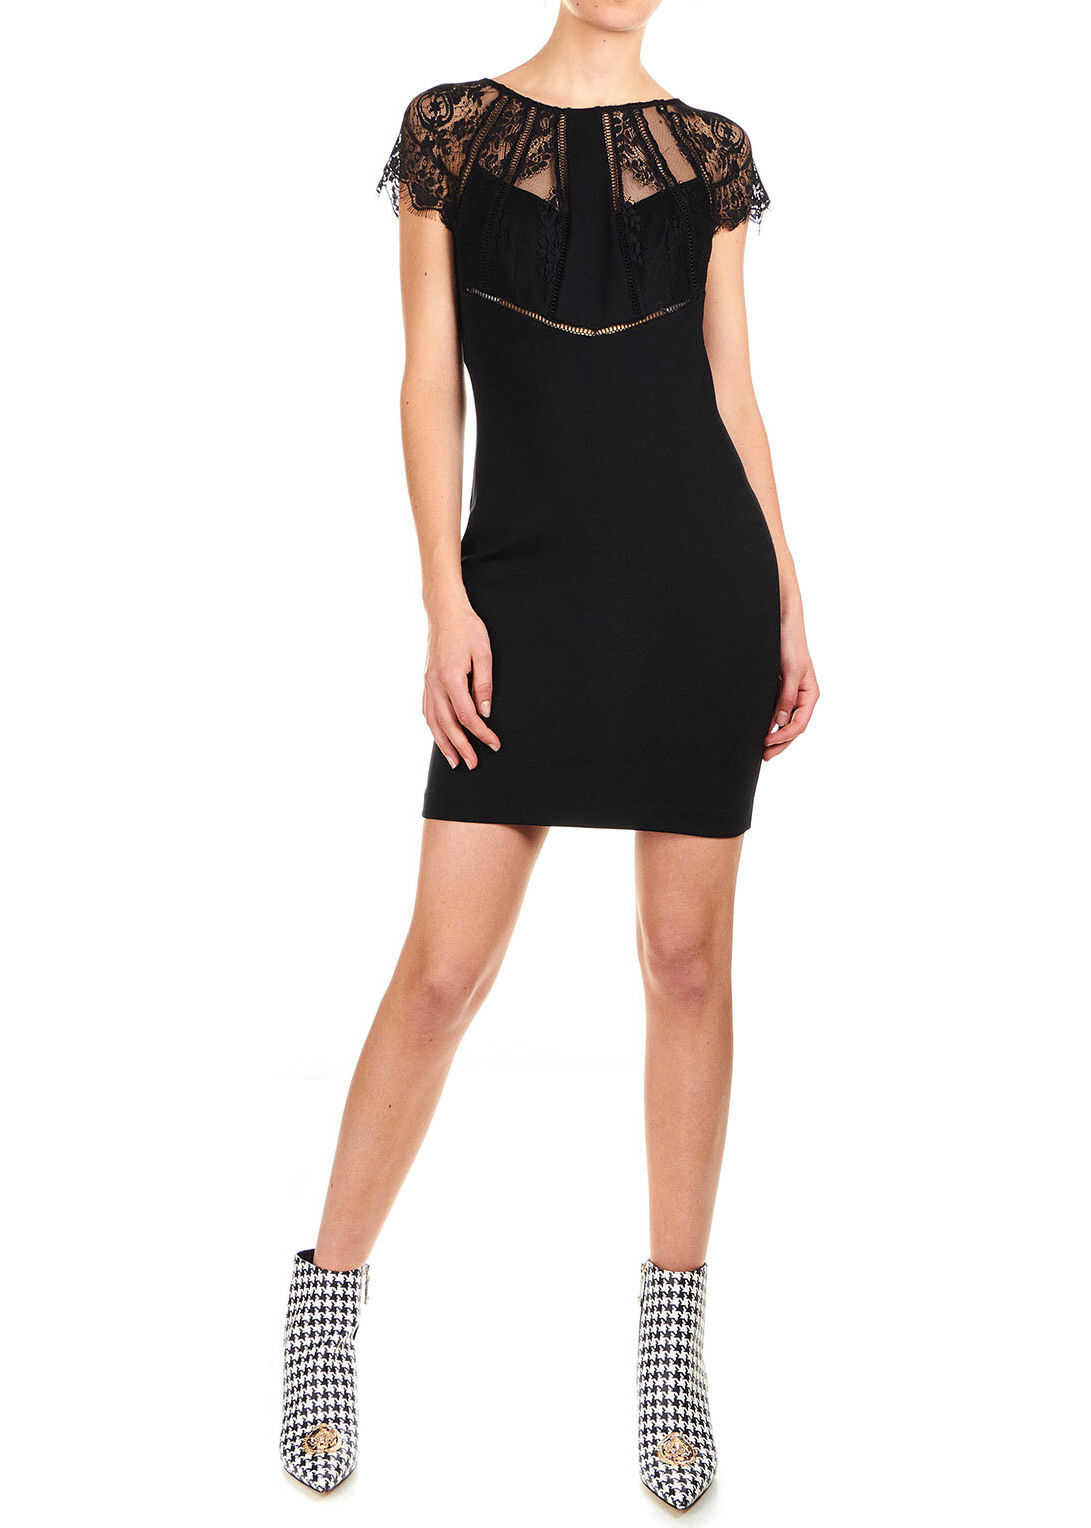 GUESS Mini dress with lace details Black